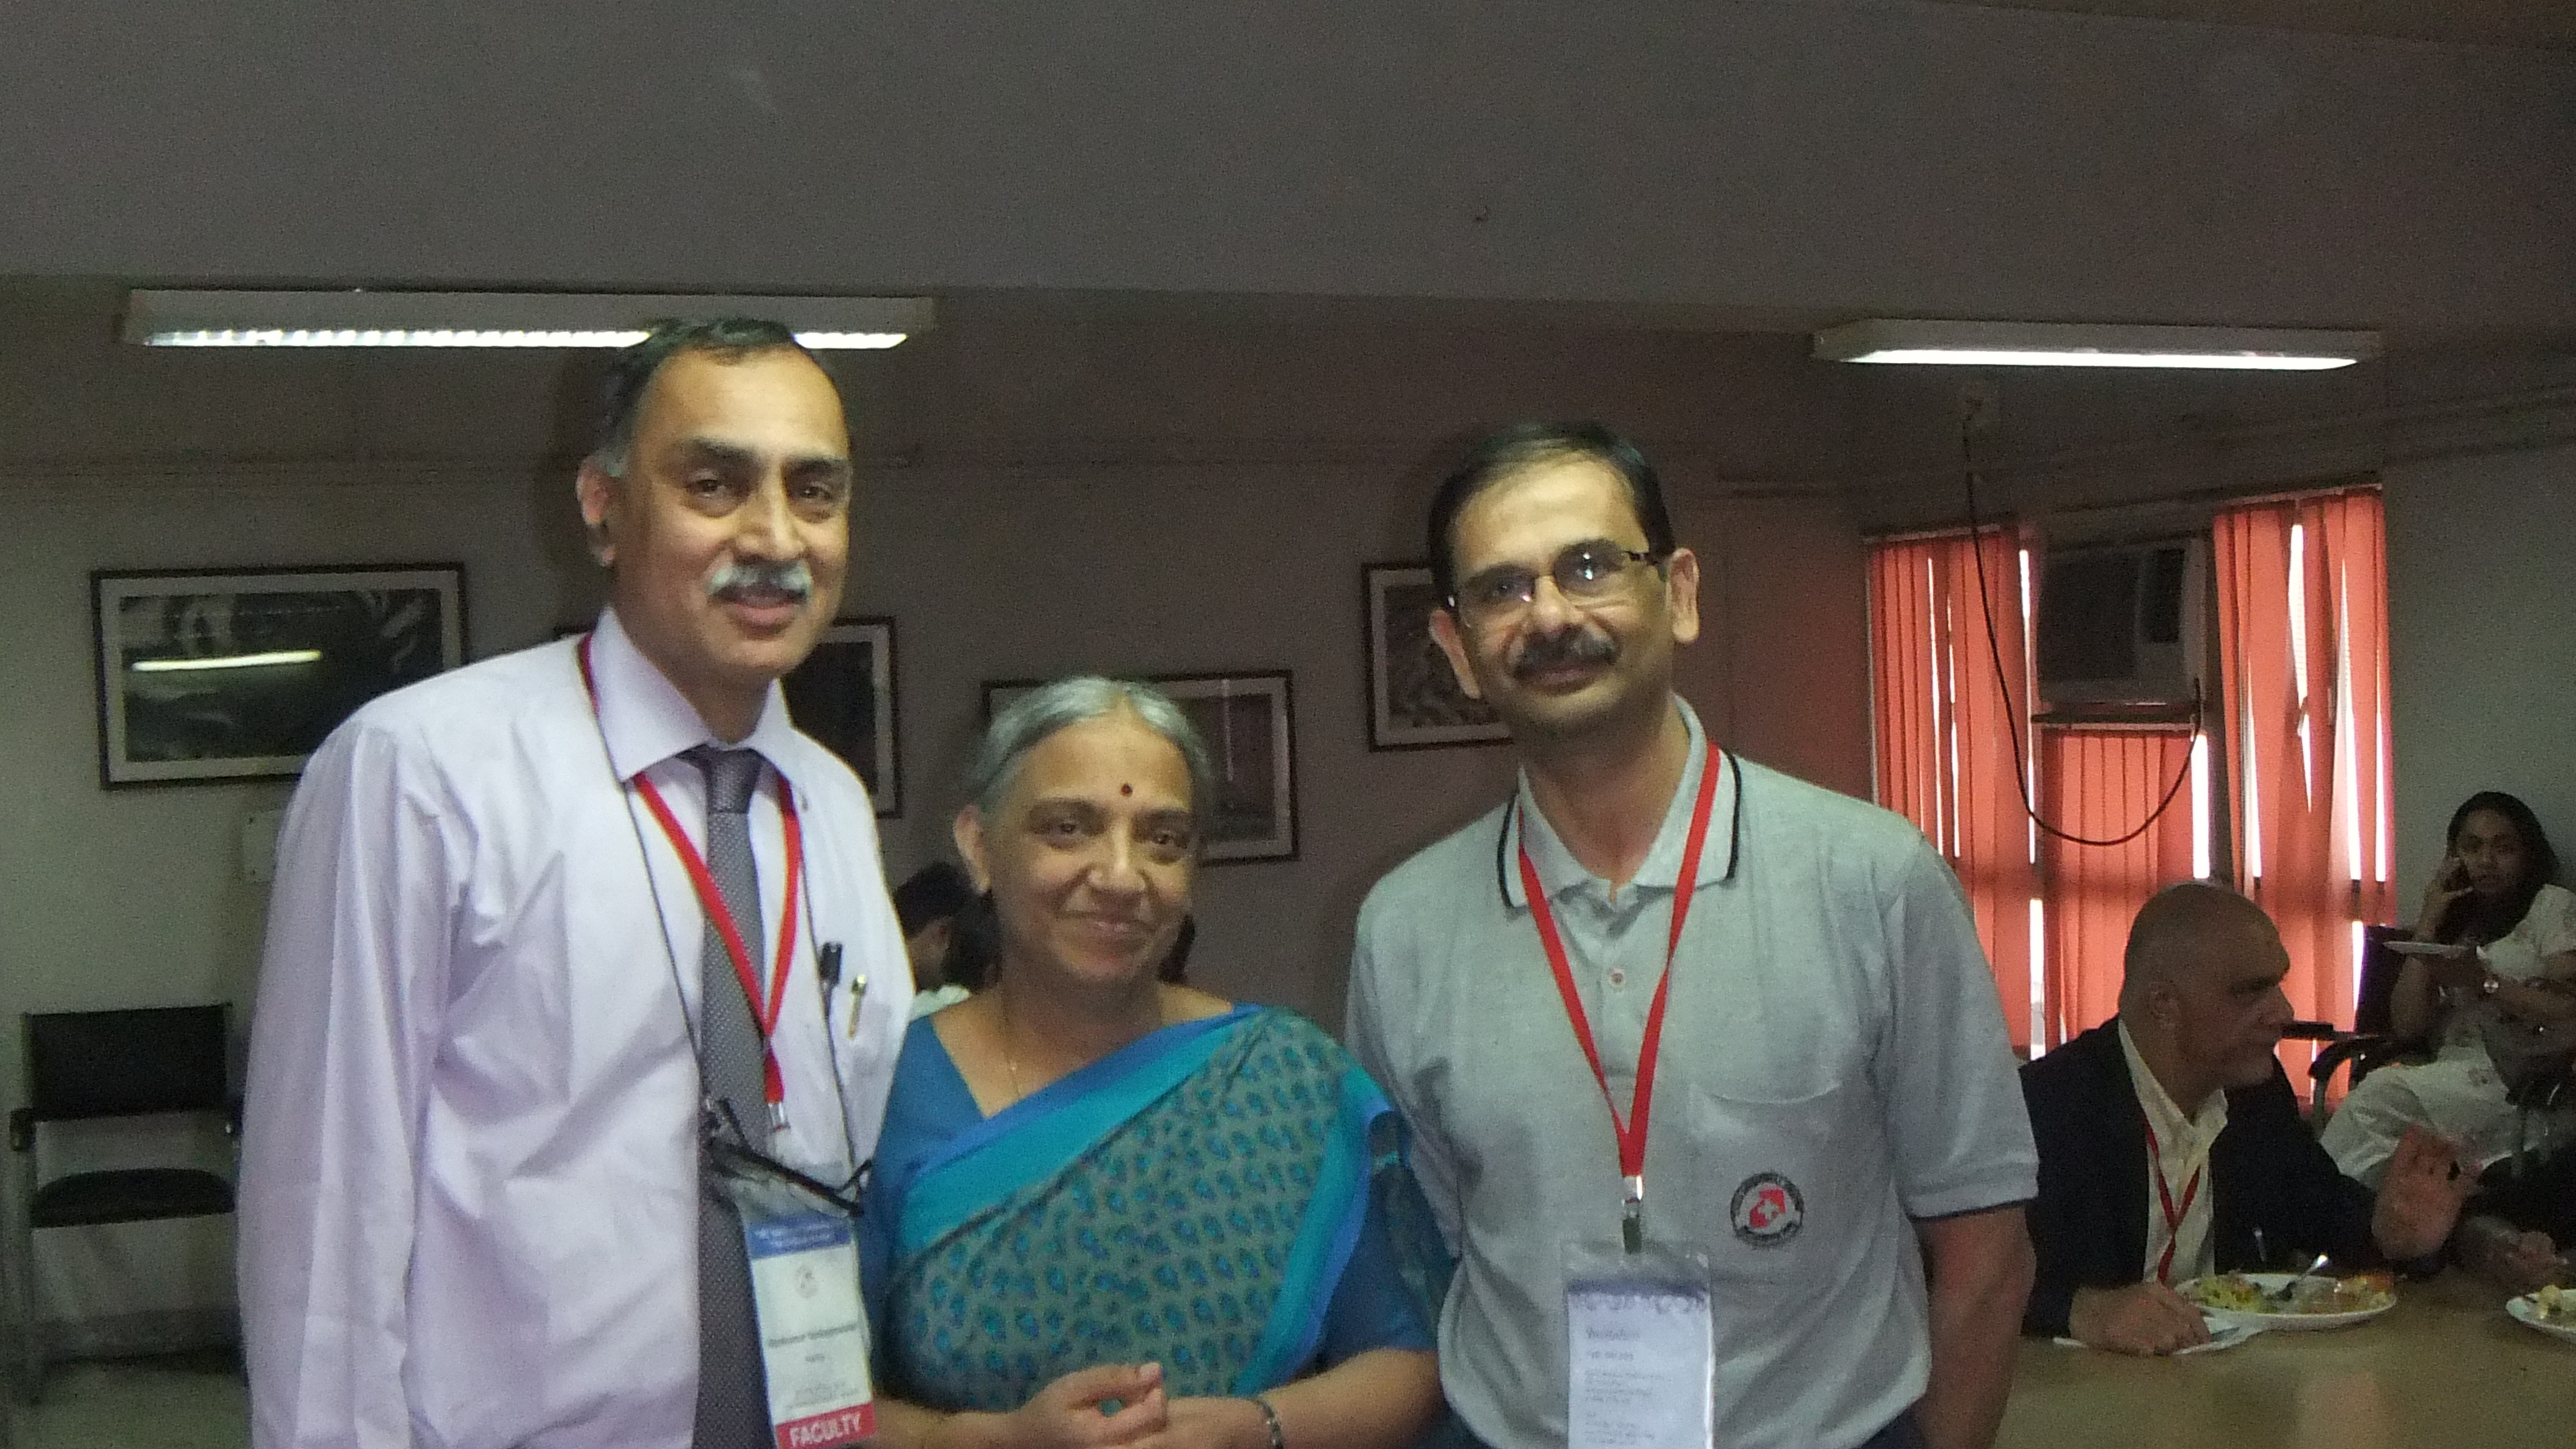 Bhavani Shankar Kodali at Mumbai Airway Meeting